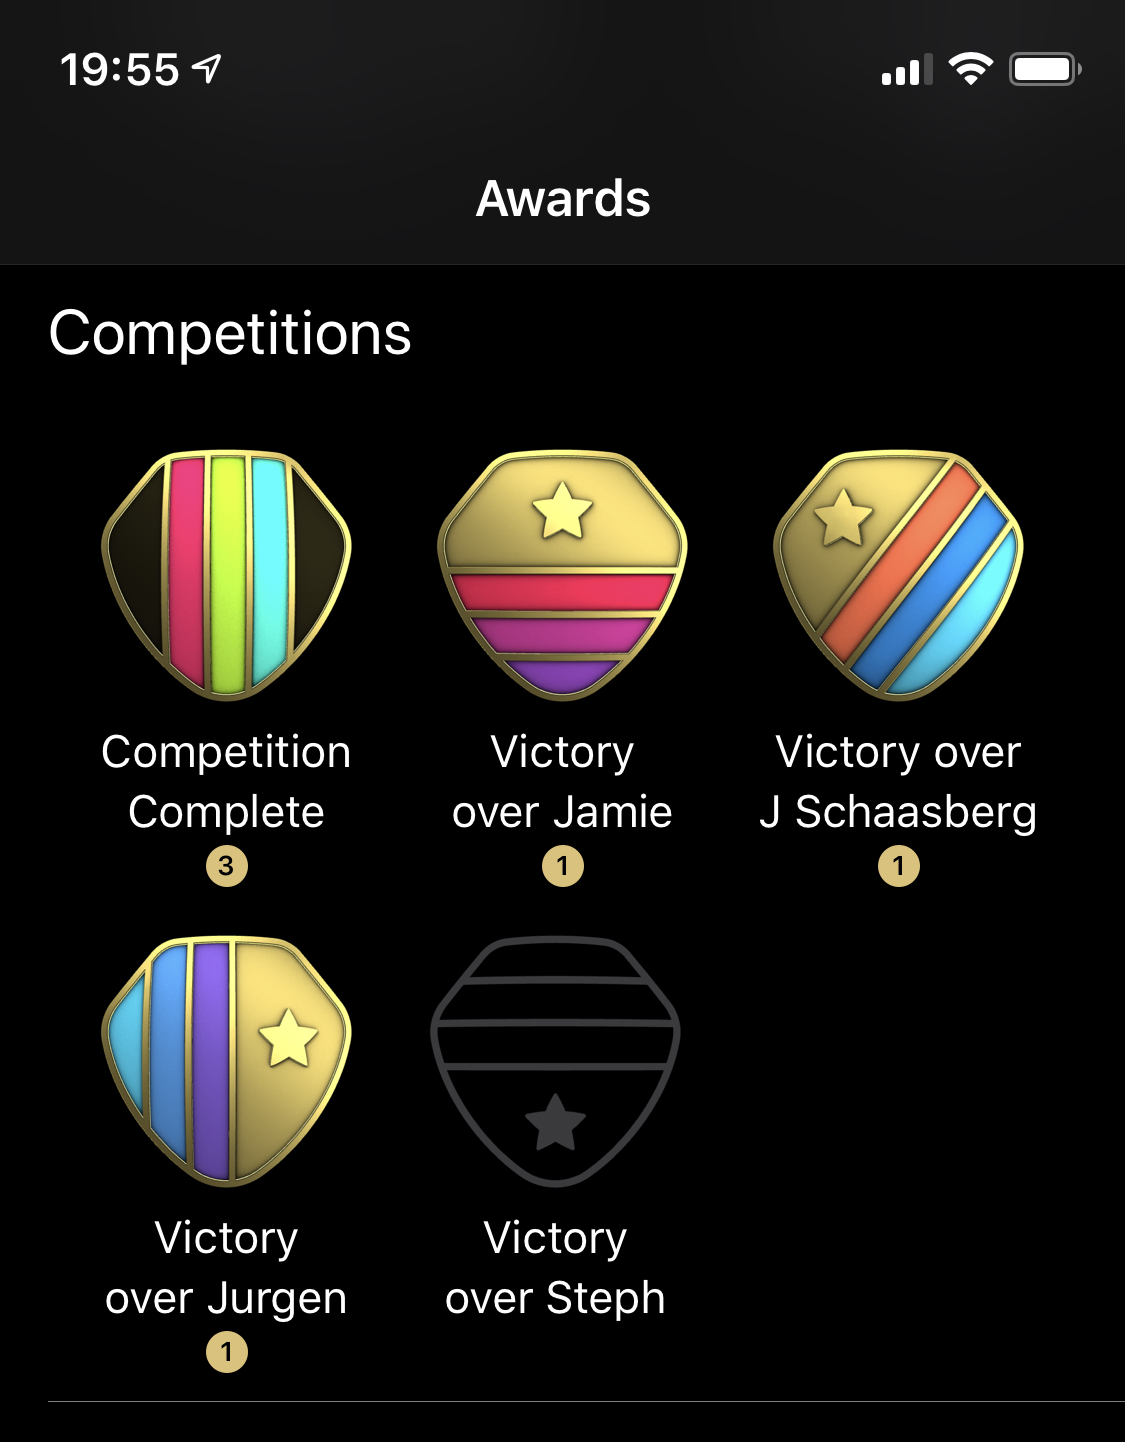 How To Win At Apple Watch 7 Day Activity Competitions The Apple